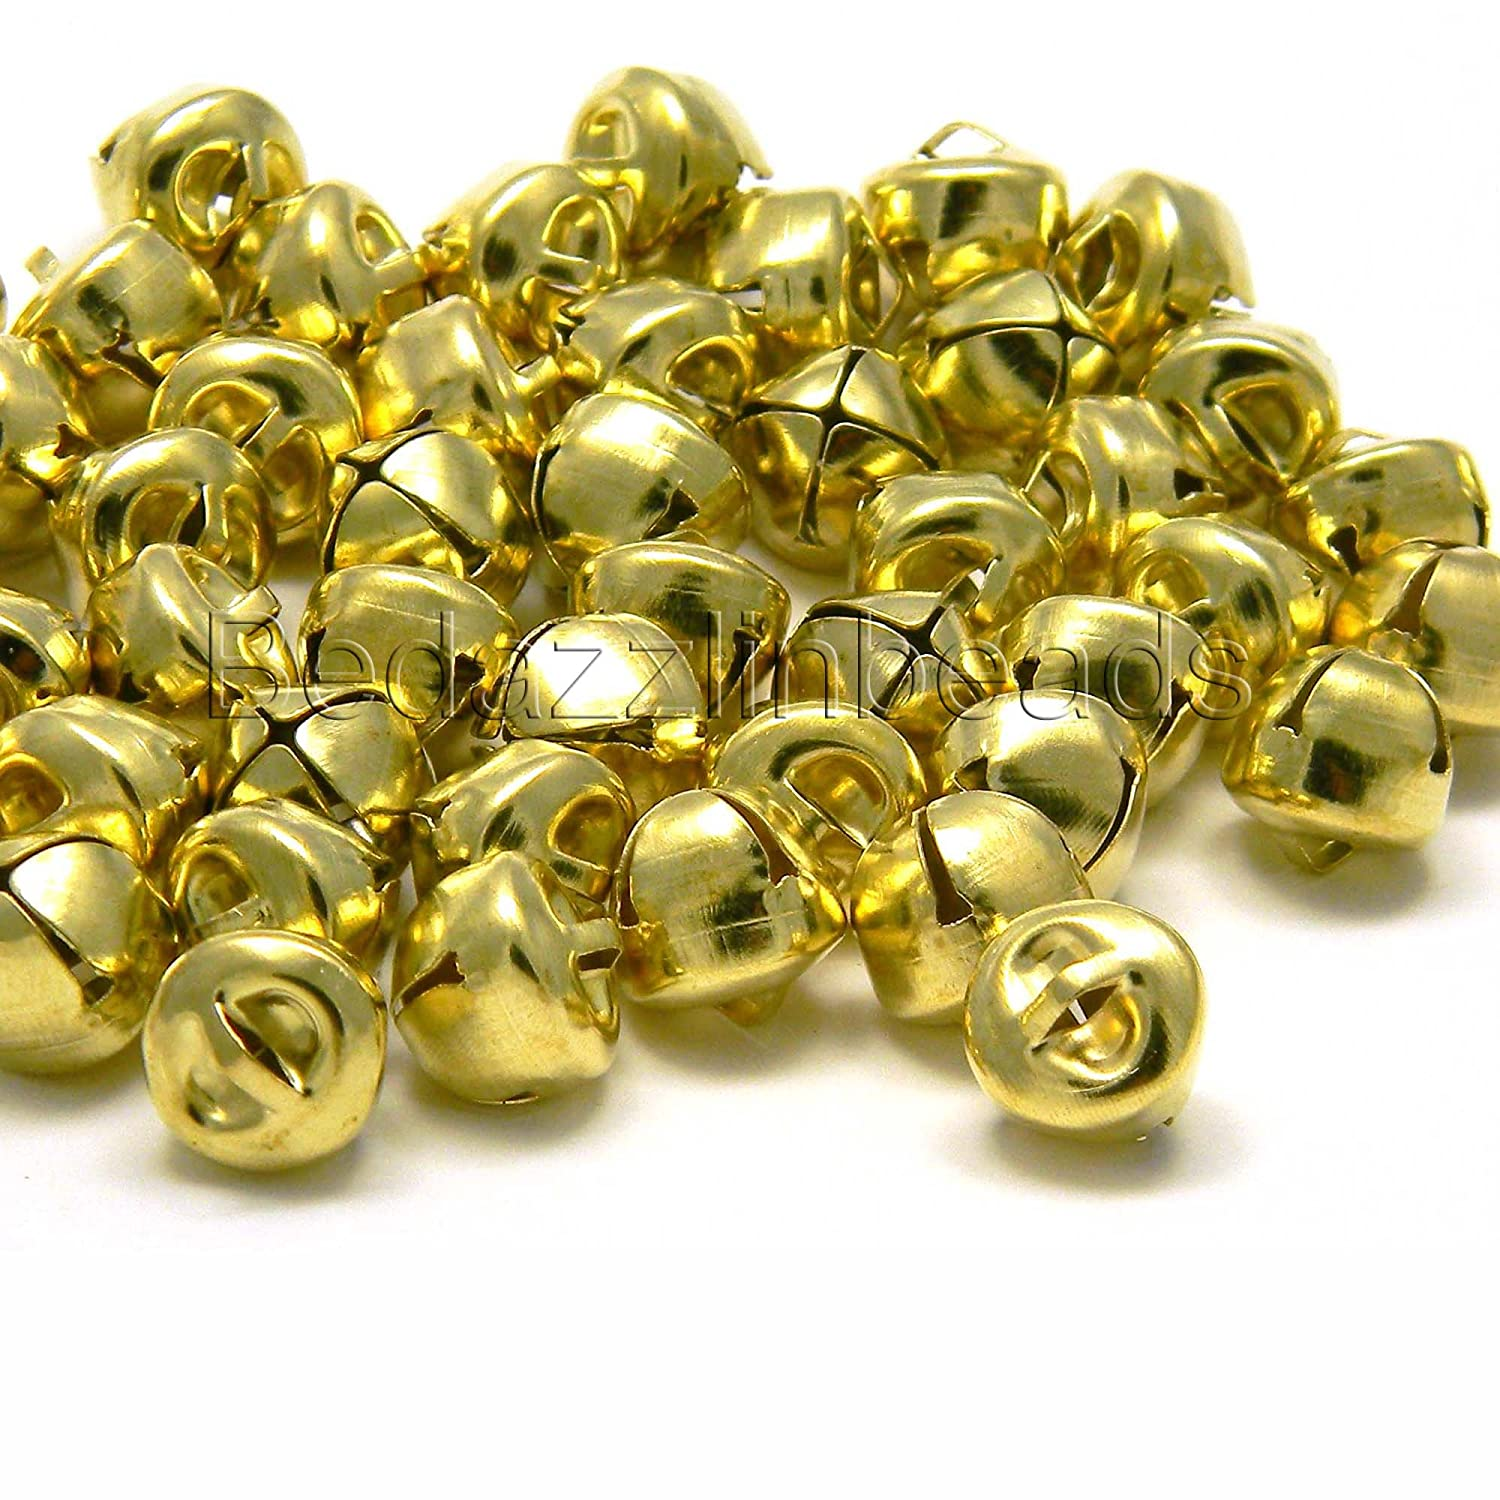 50 Round 10mm 3/8 inch Iron Craft Jingle Bells With Loop to Use as Dangle Charms (Gold) Bedazzlinbeads